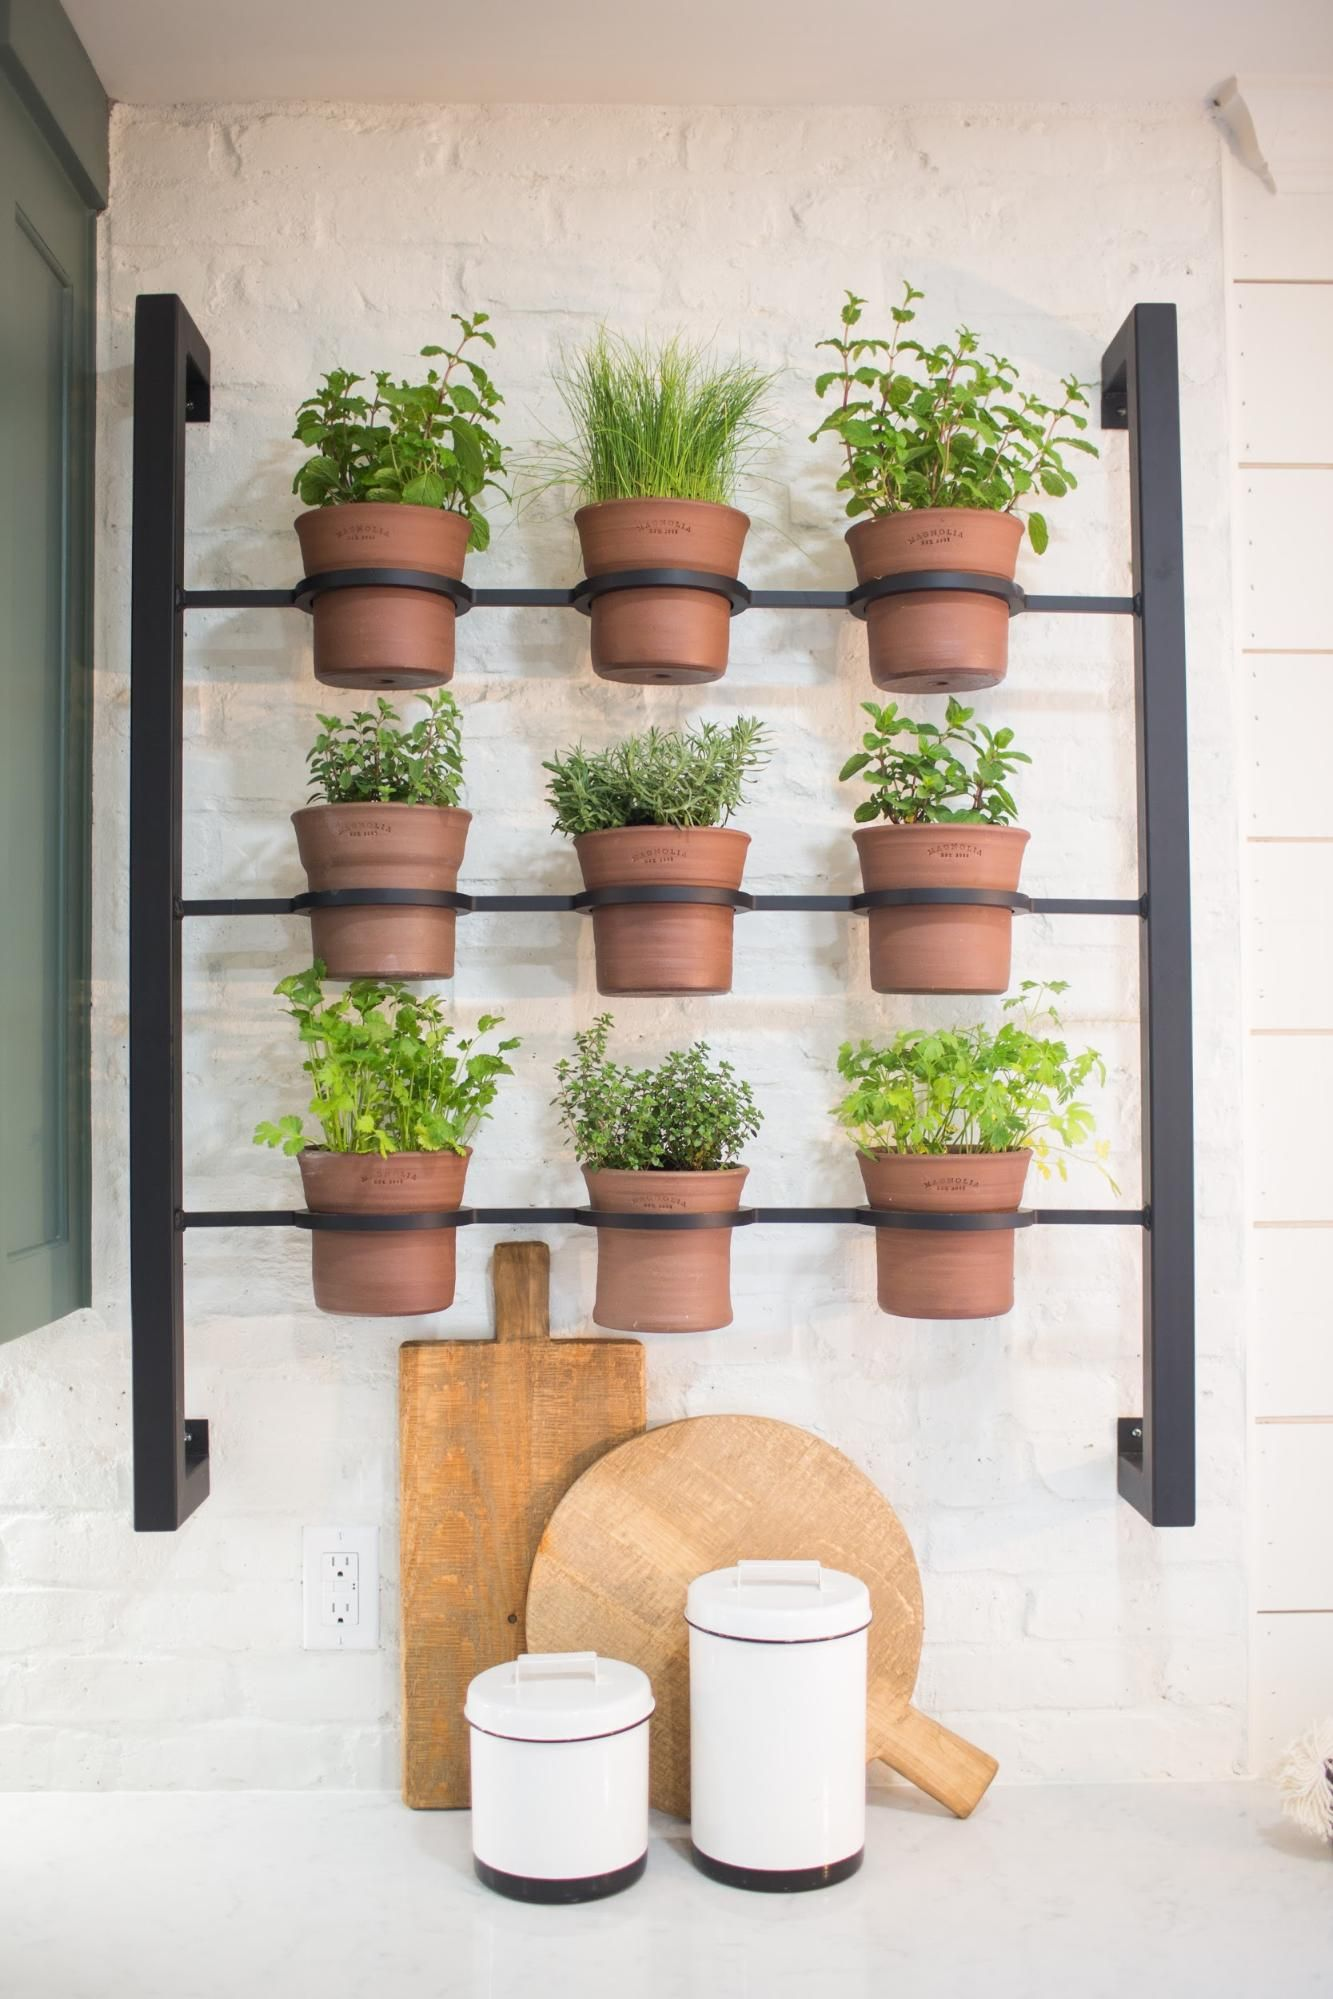 Kitchen Herb Garden Planter I Designed This Wall Planter That My Welder Cody Built And